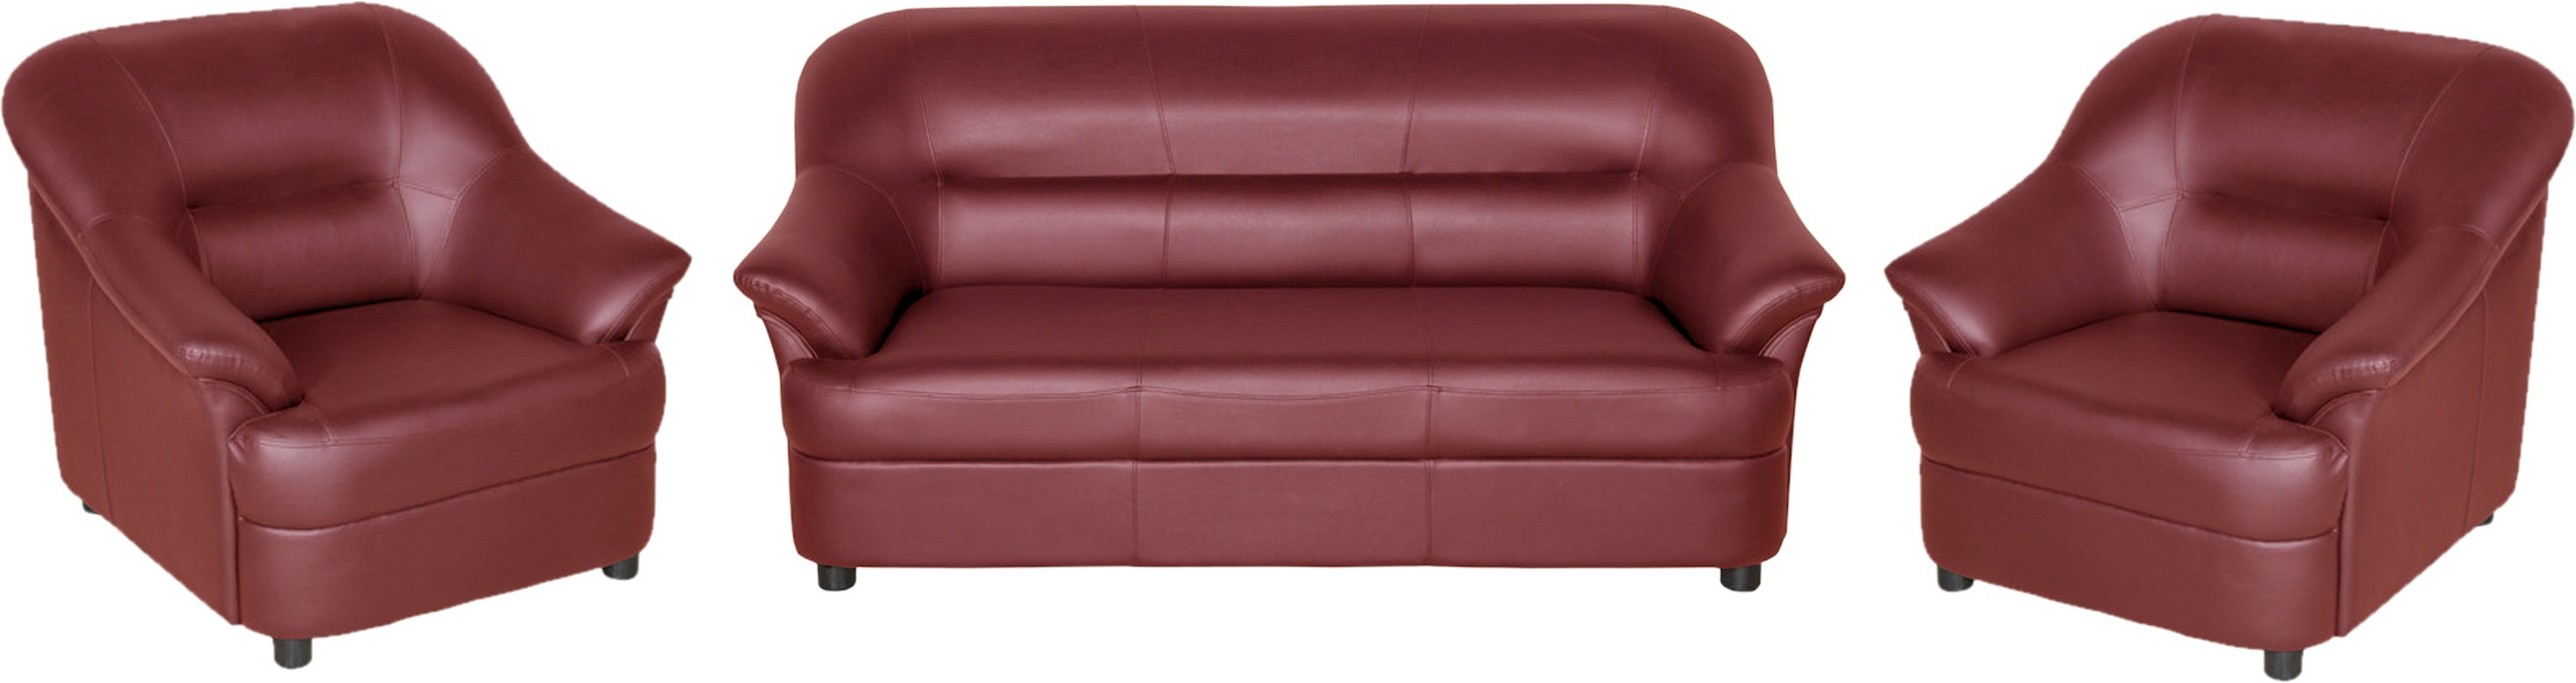 View Sethu Furniture Fabric 3 + 1 + 1 Maroon Sofa Set(Configuration - Straight) Furniture (Sethu Furniture)